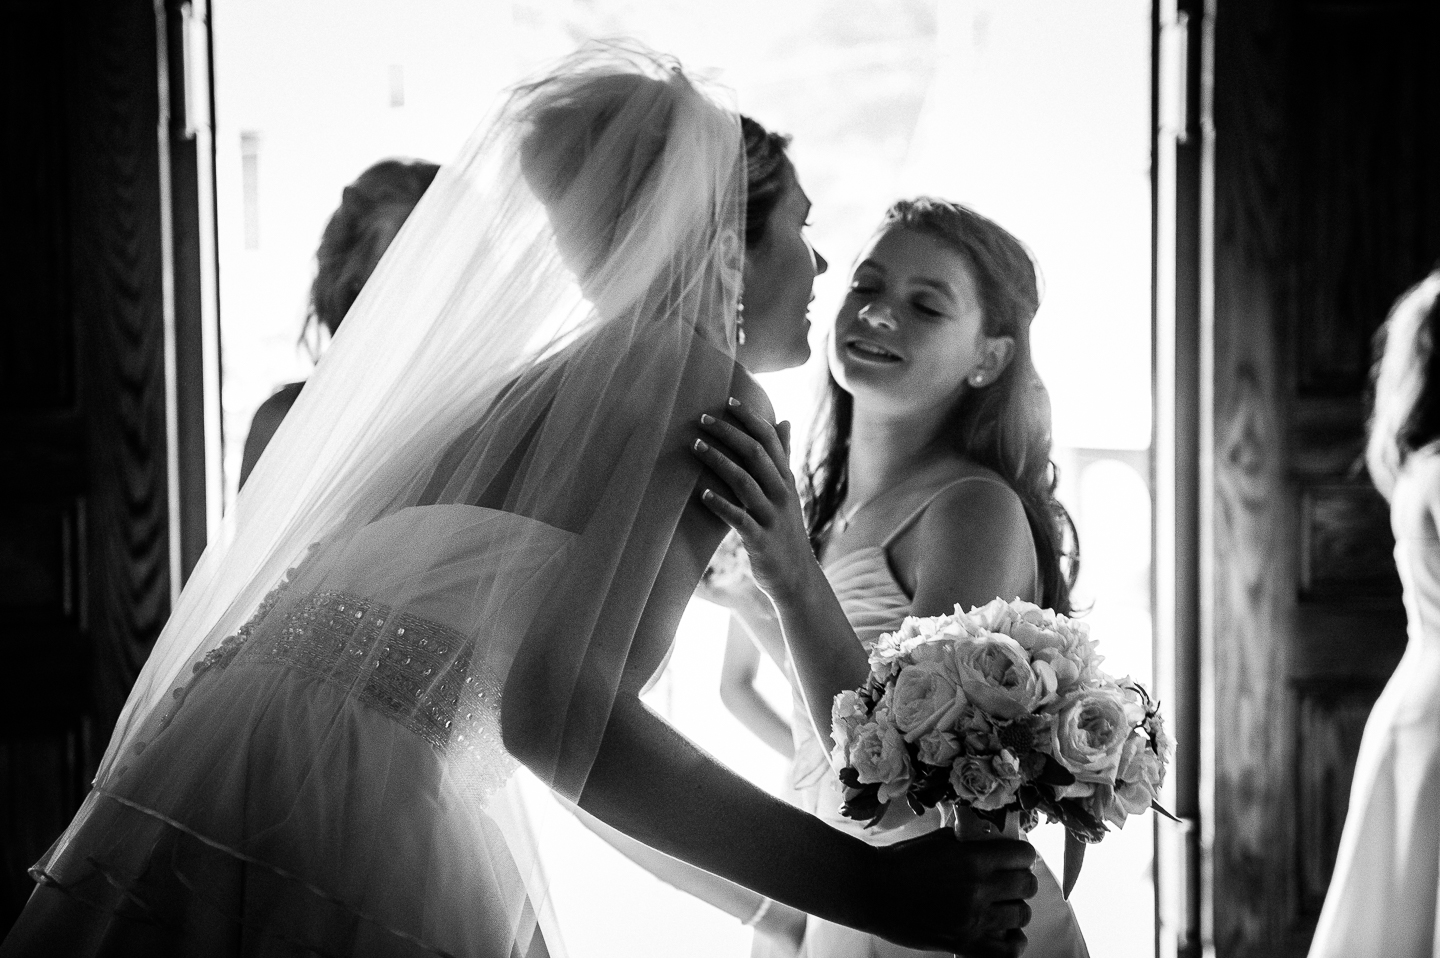 last kisses to her adorable jr bridesmaid before the bride walks down the aisle